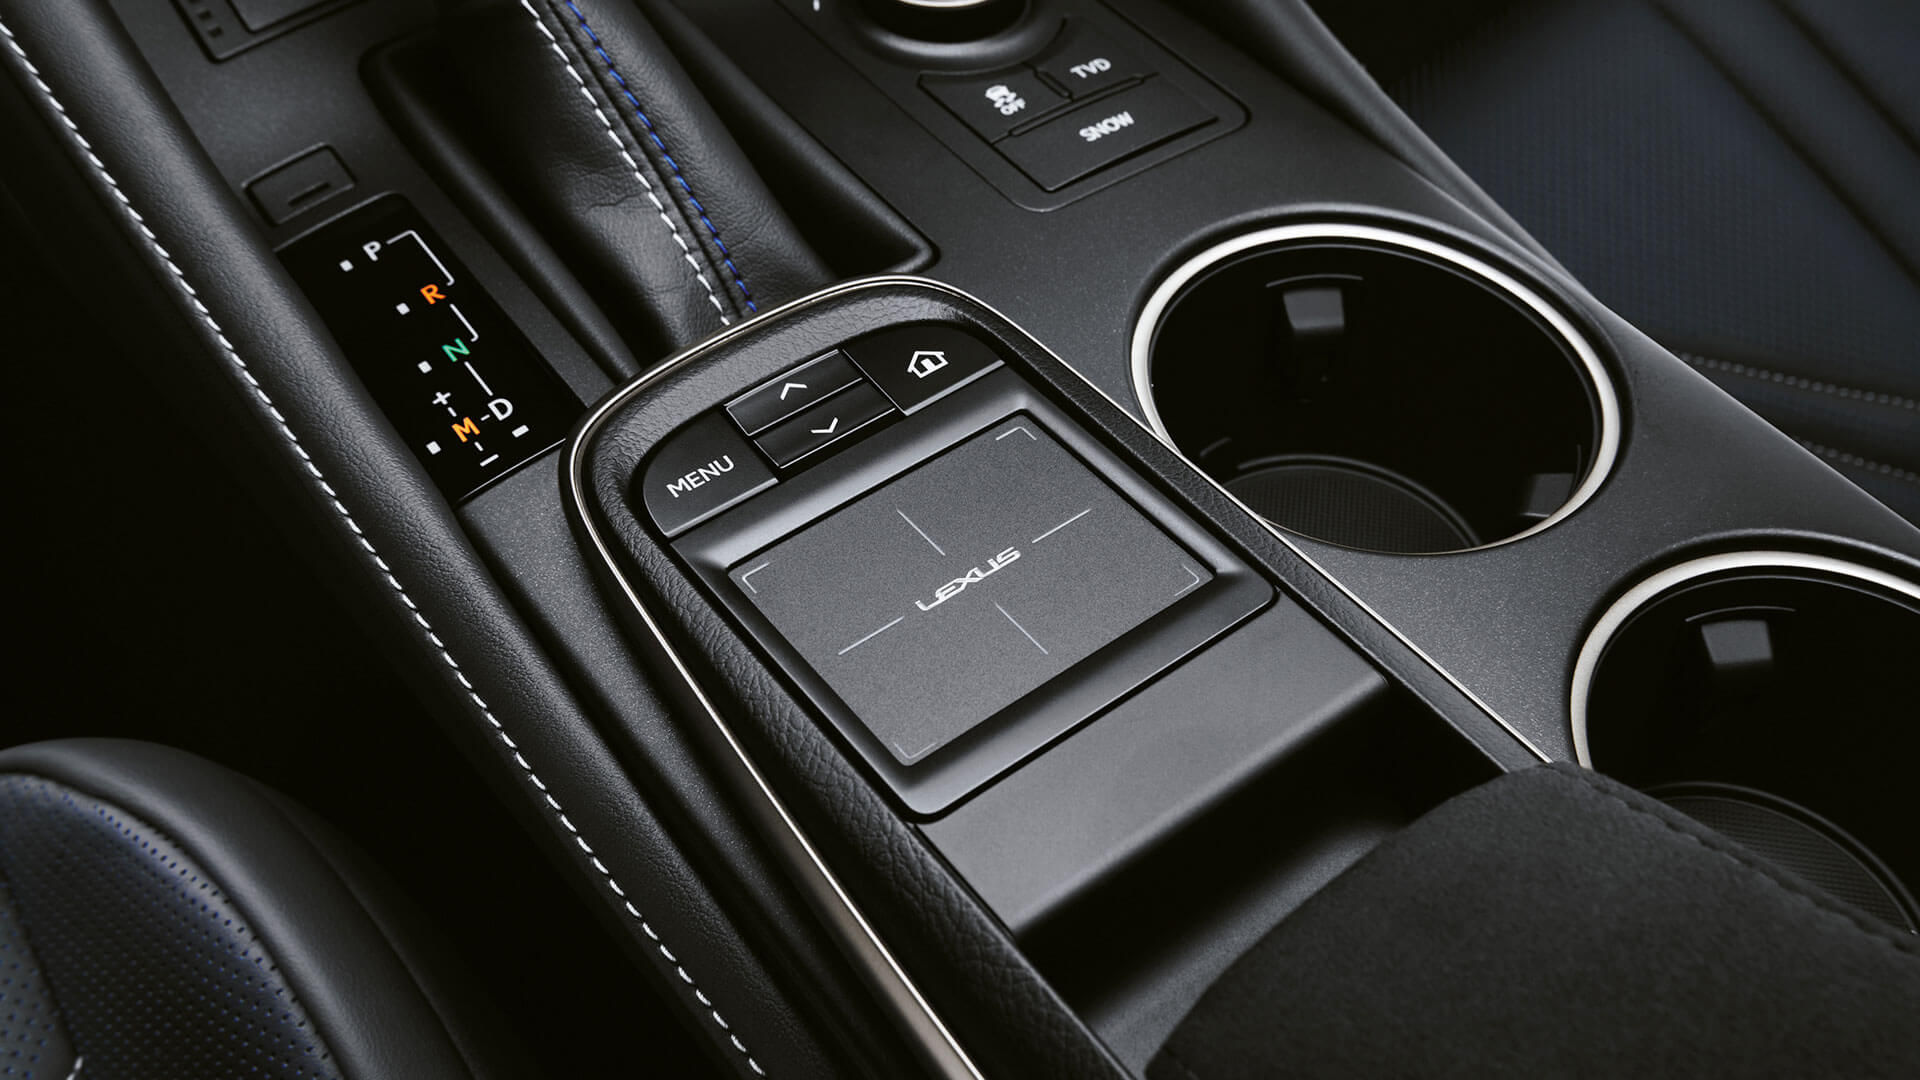 2017 lexus rc f features touch pad control